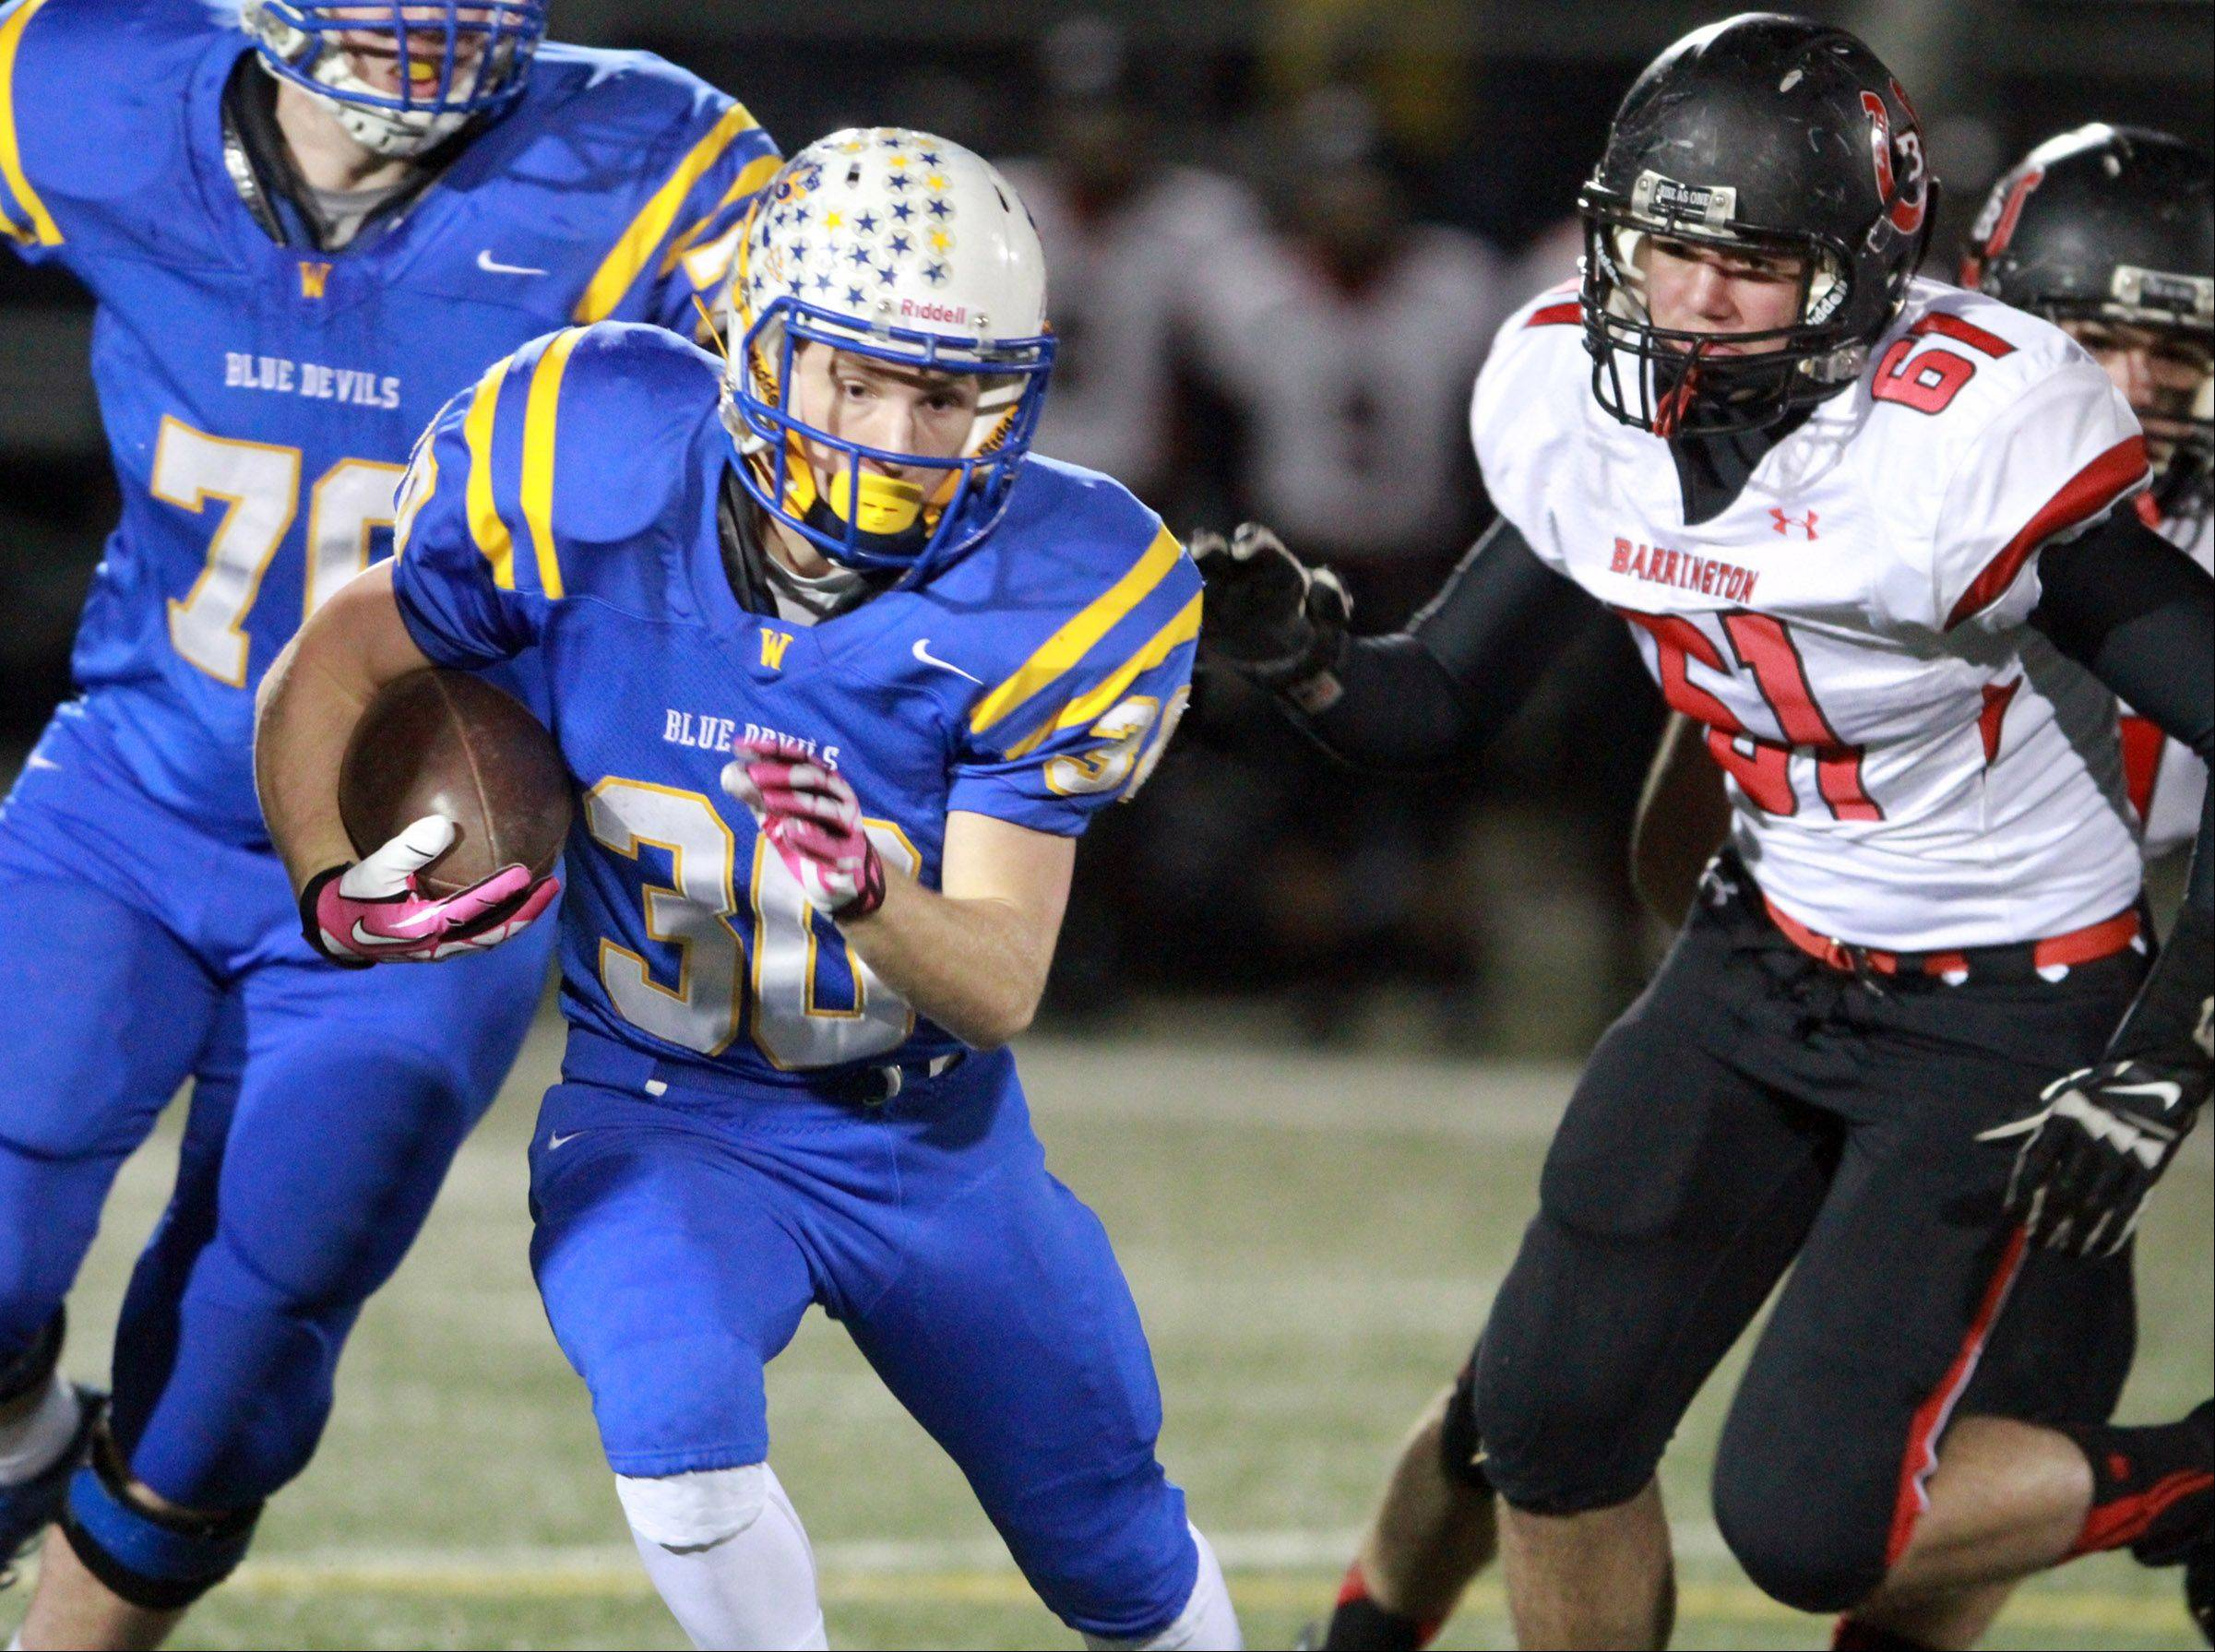 Warren's Maxwell Sorby gets past Barrington's Kyle Meckert Saturday in Gurnee.